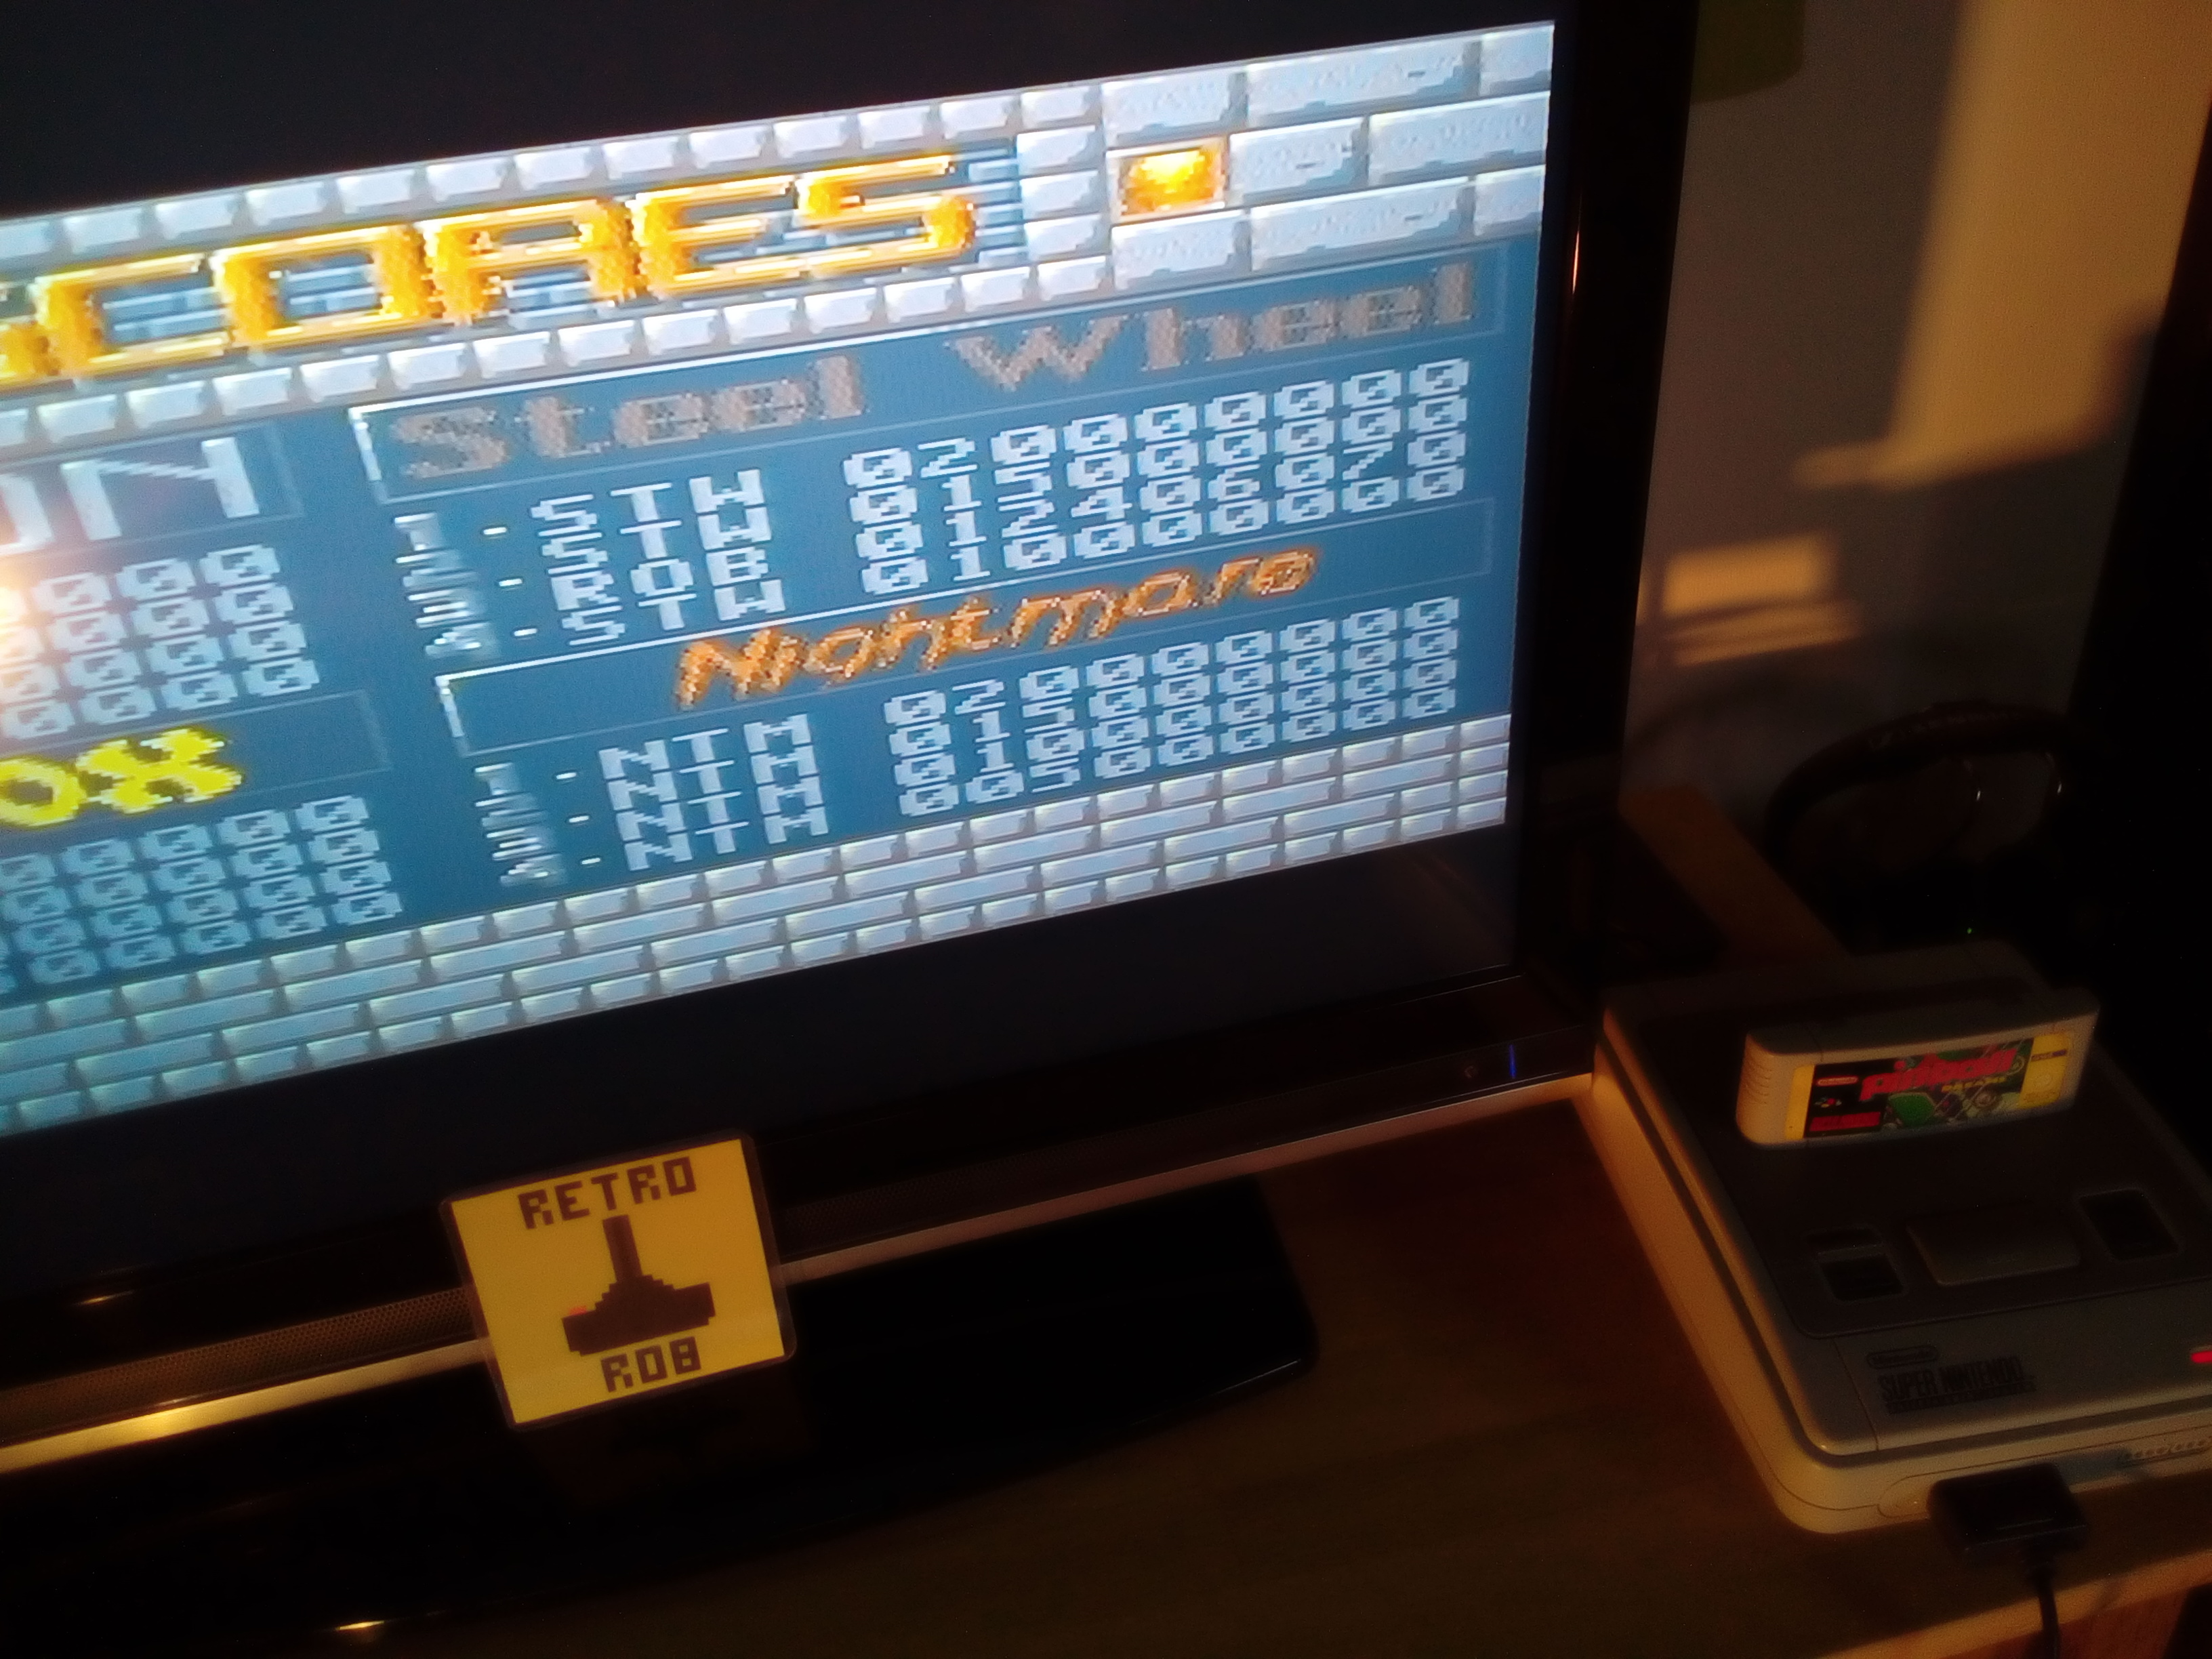 RetroRob: Pinball Dreams: Steel Wheel (SNES/Super Famicom) 12,406,070 points on 2019-10-06 08:39:38